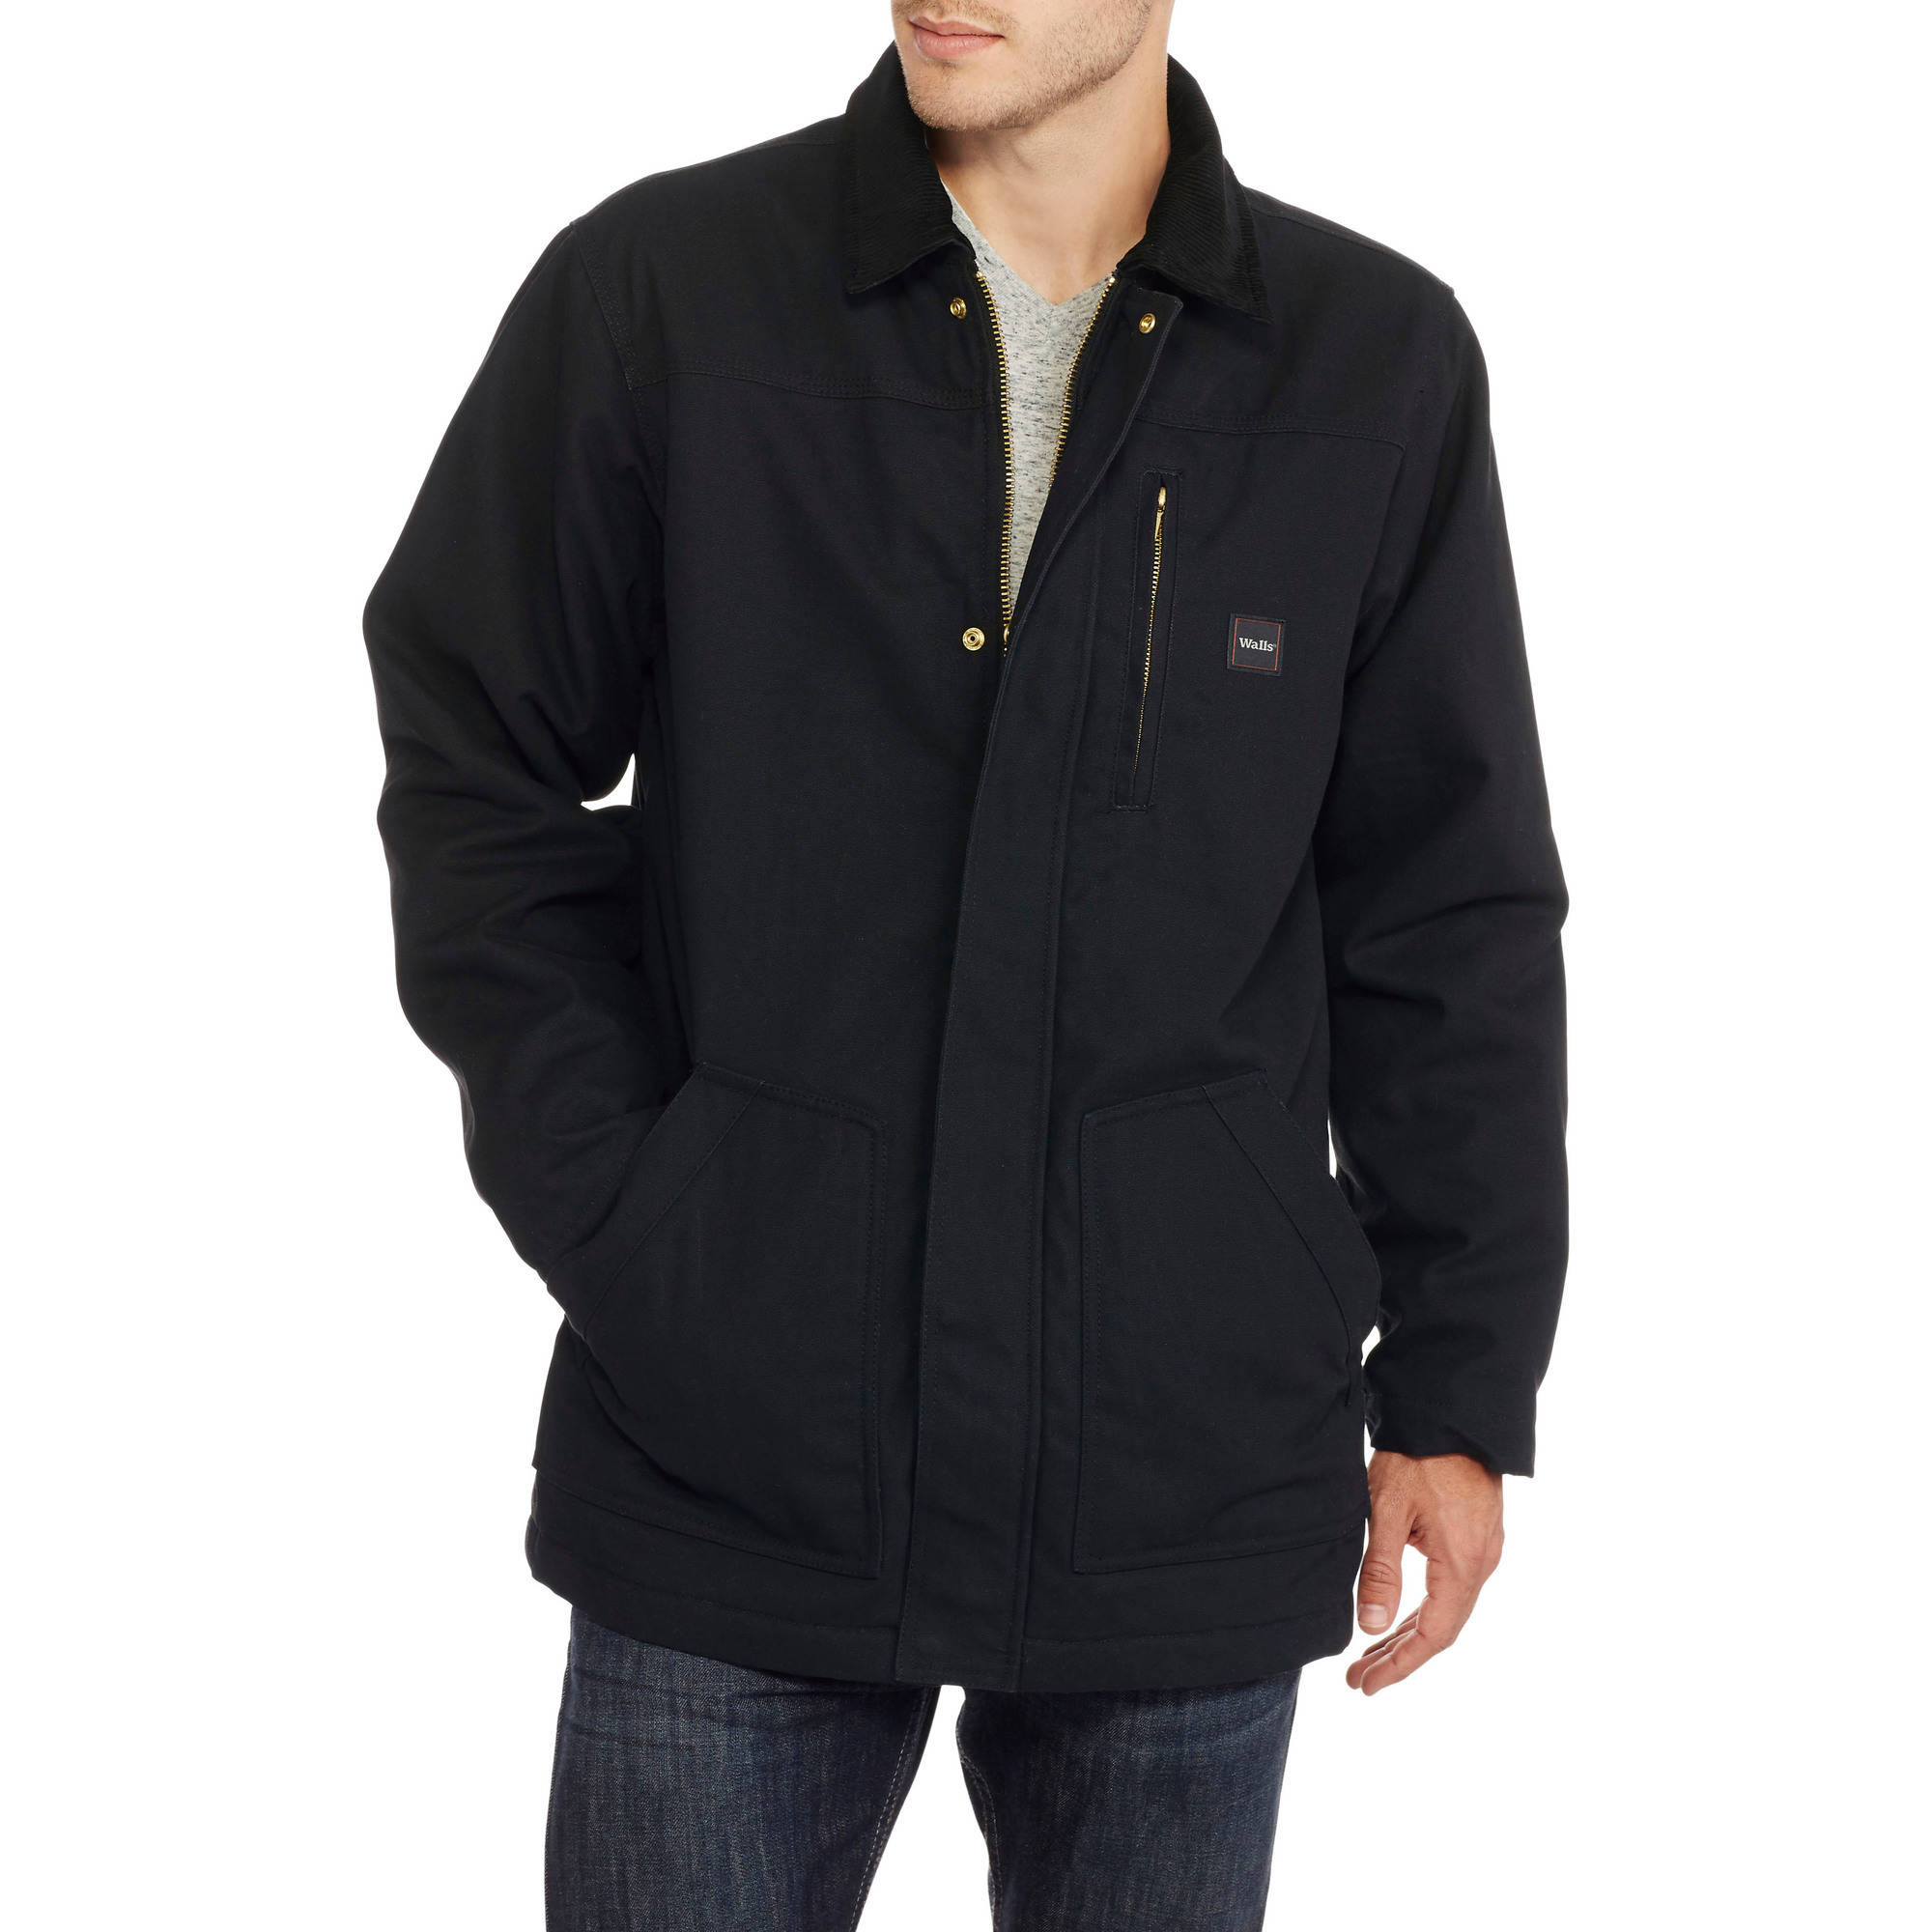 Walls Men's Sherpa Lined Chore Coat